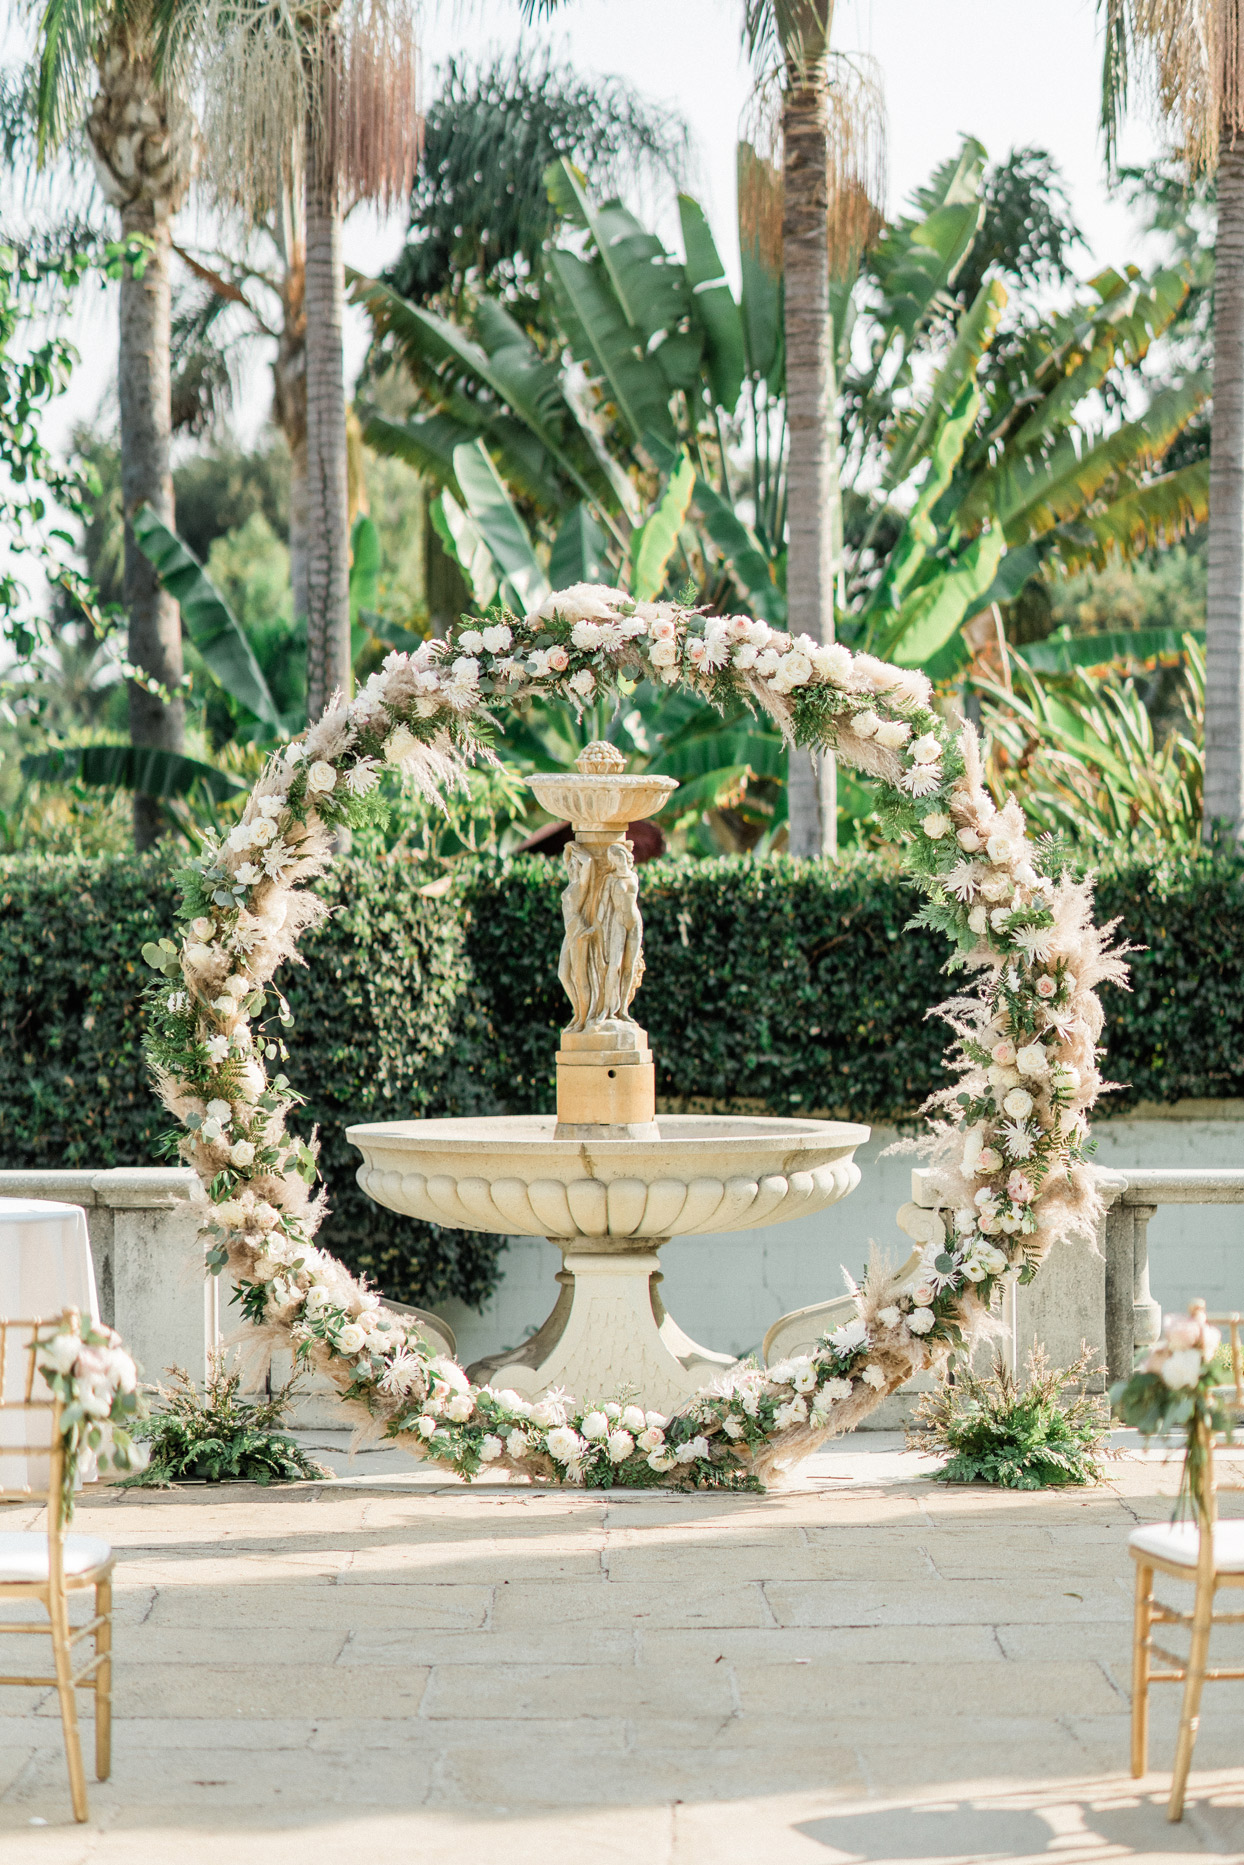 Archway with flowers and fountain